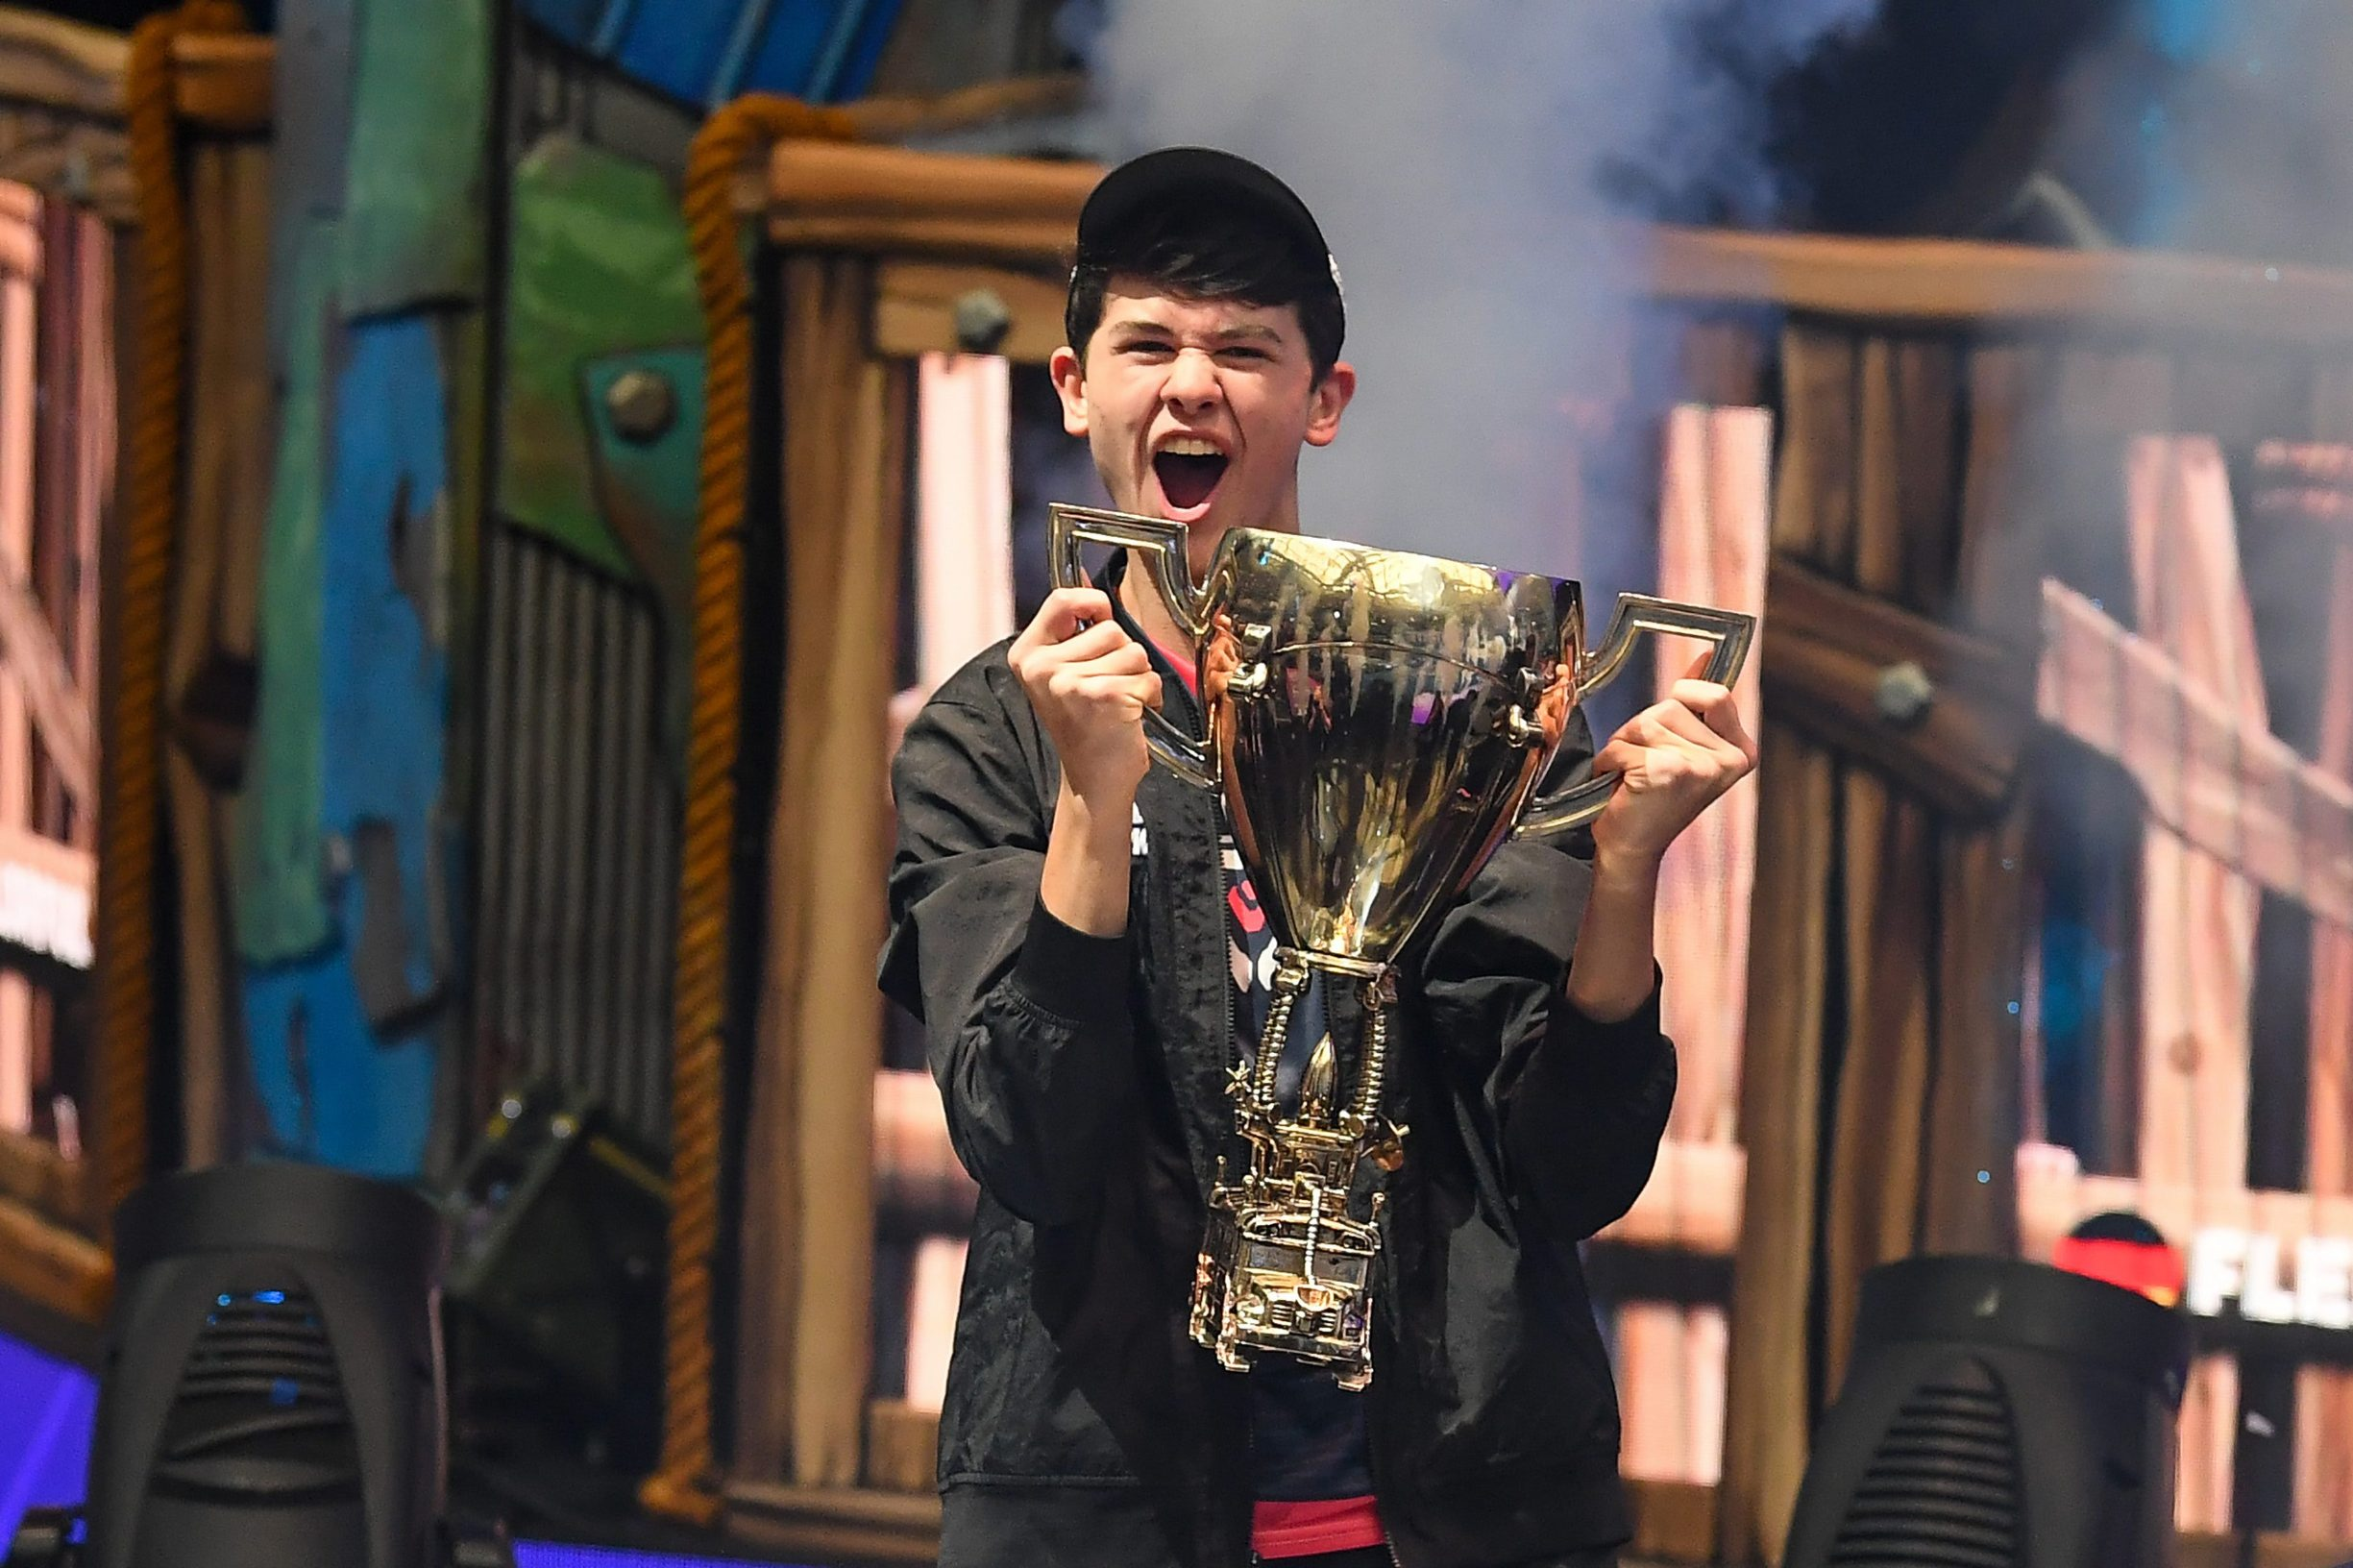 Jul 28, 2019; Flushing, NY, USA; Bugha celebrates his win as the first solo World Champion at the Fortnite World Cup Finals e-sports event at Arthur Ashe Stadium. Mandatory Credit: Dennis Schneidler-USA TODAY Sports